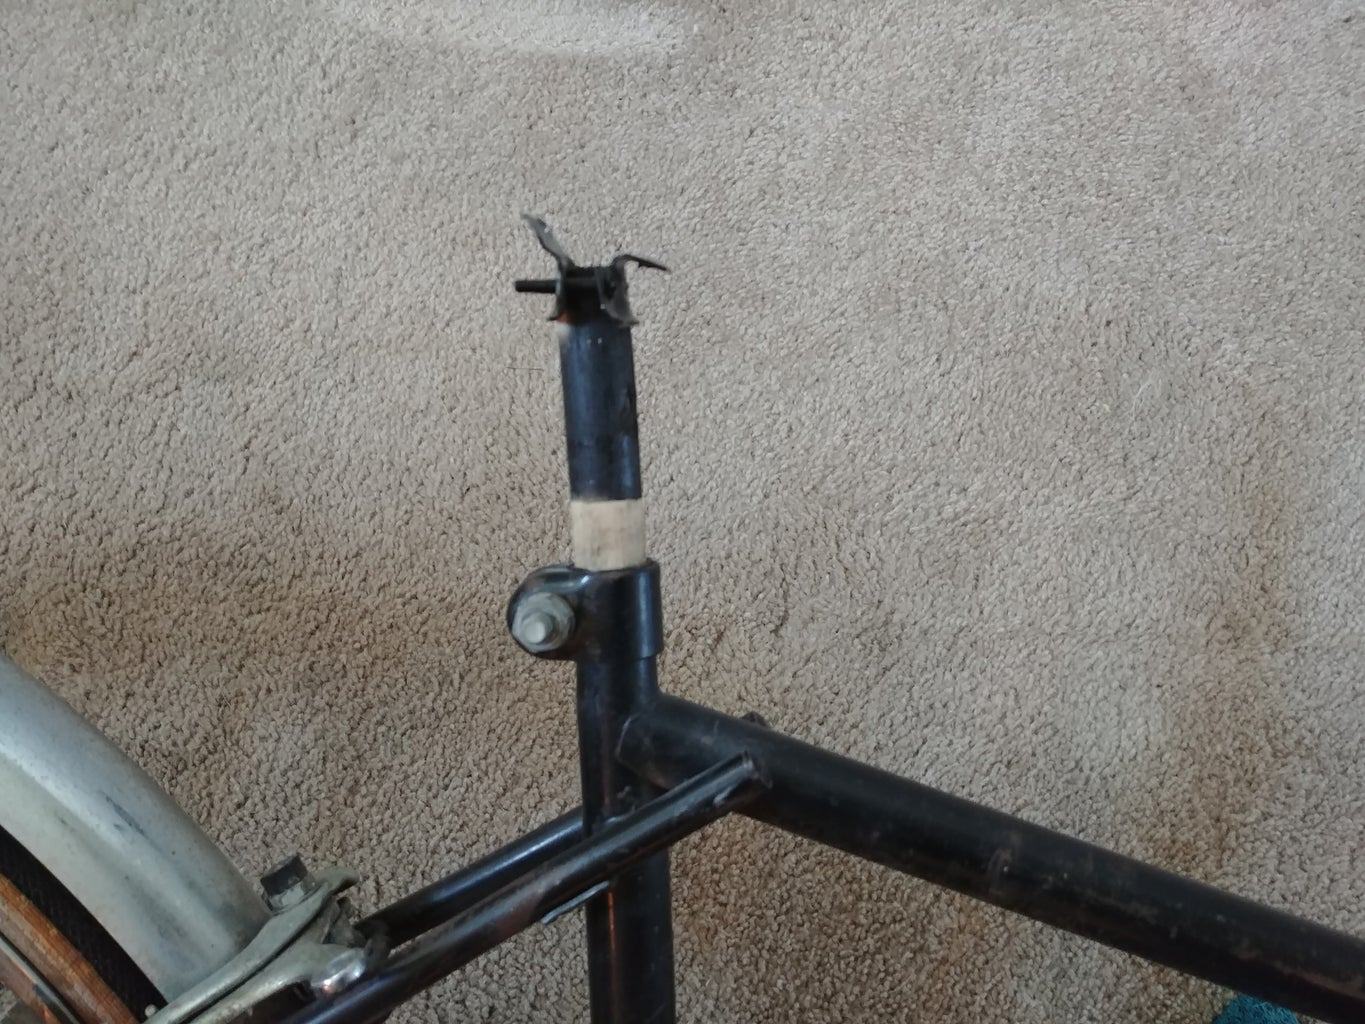 Mounts for the Bike